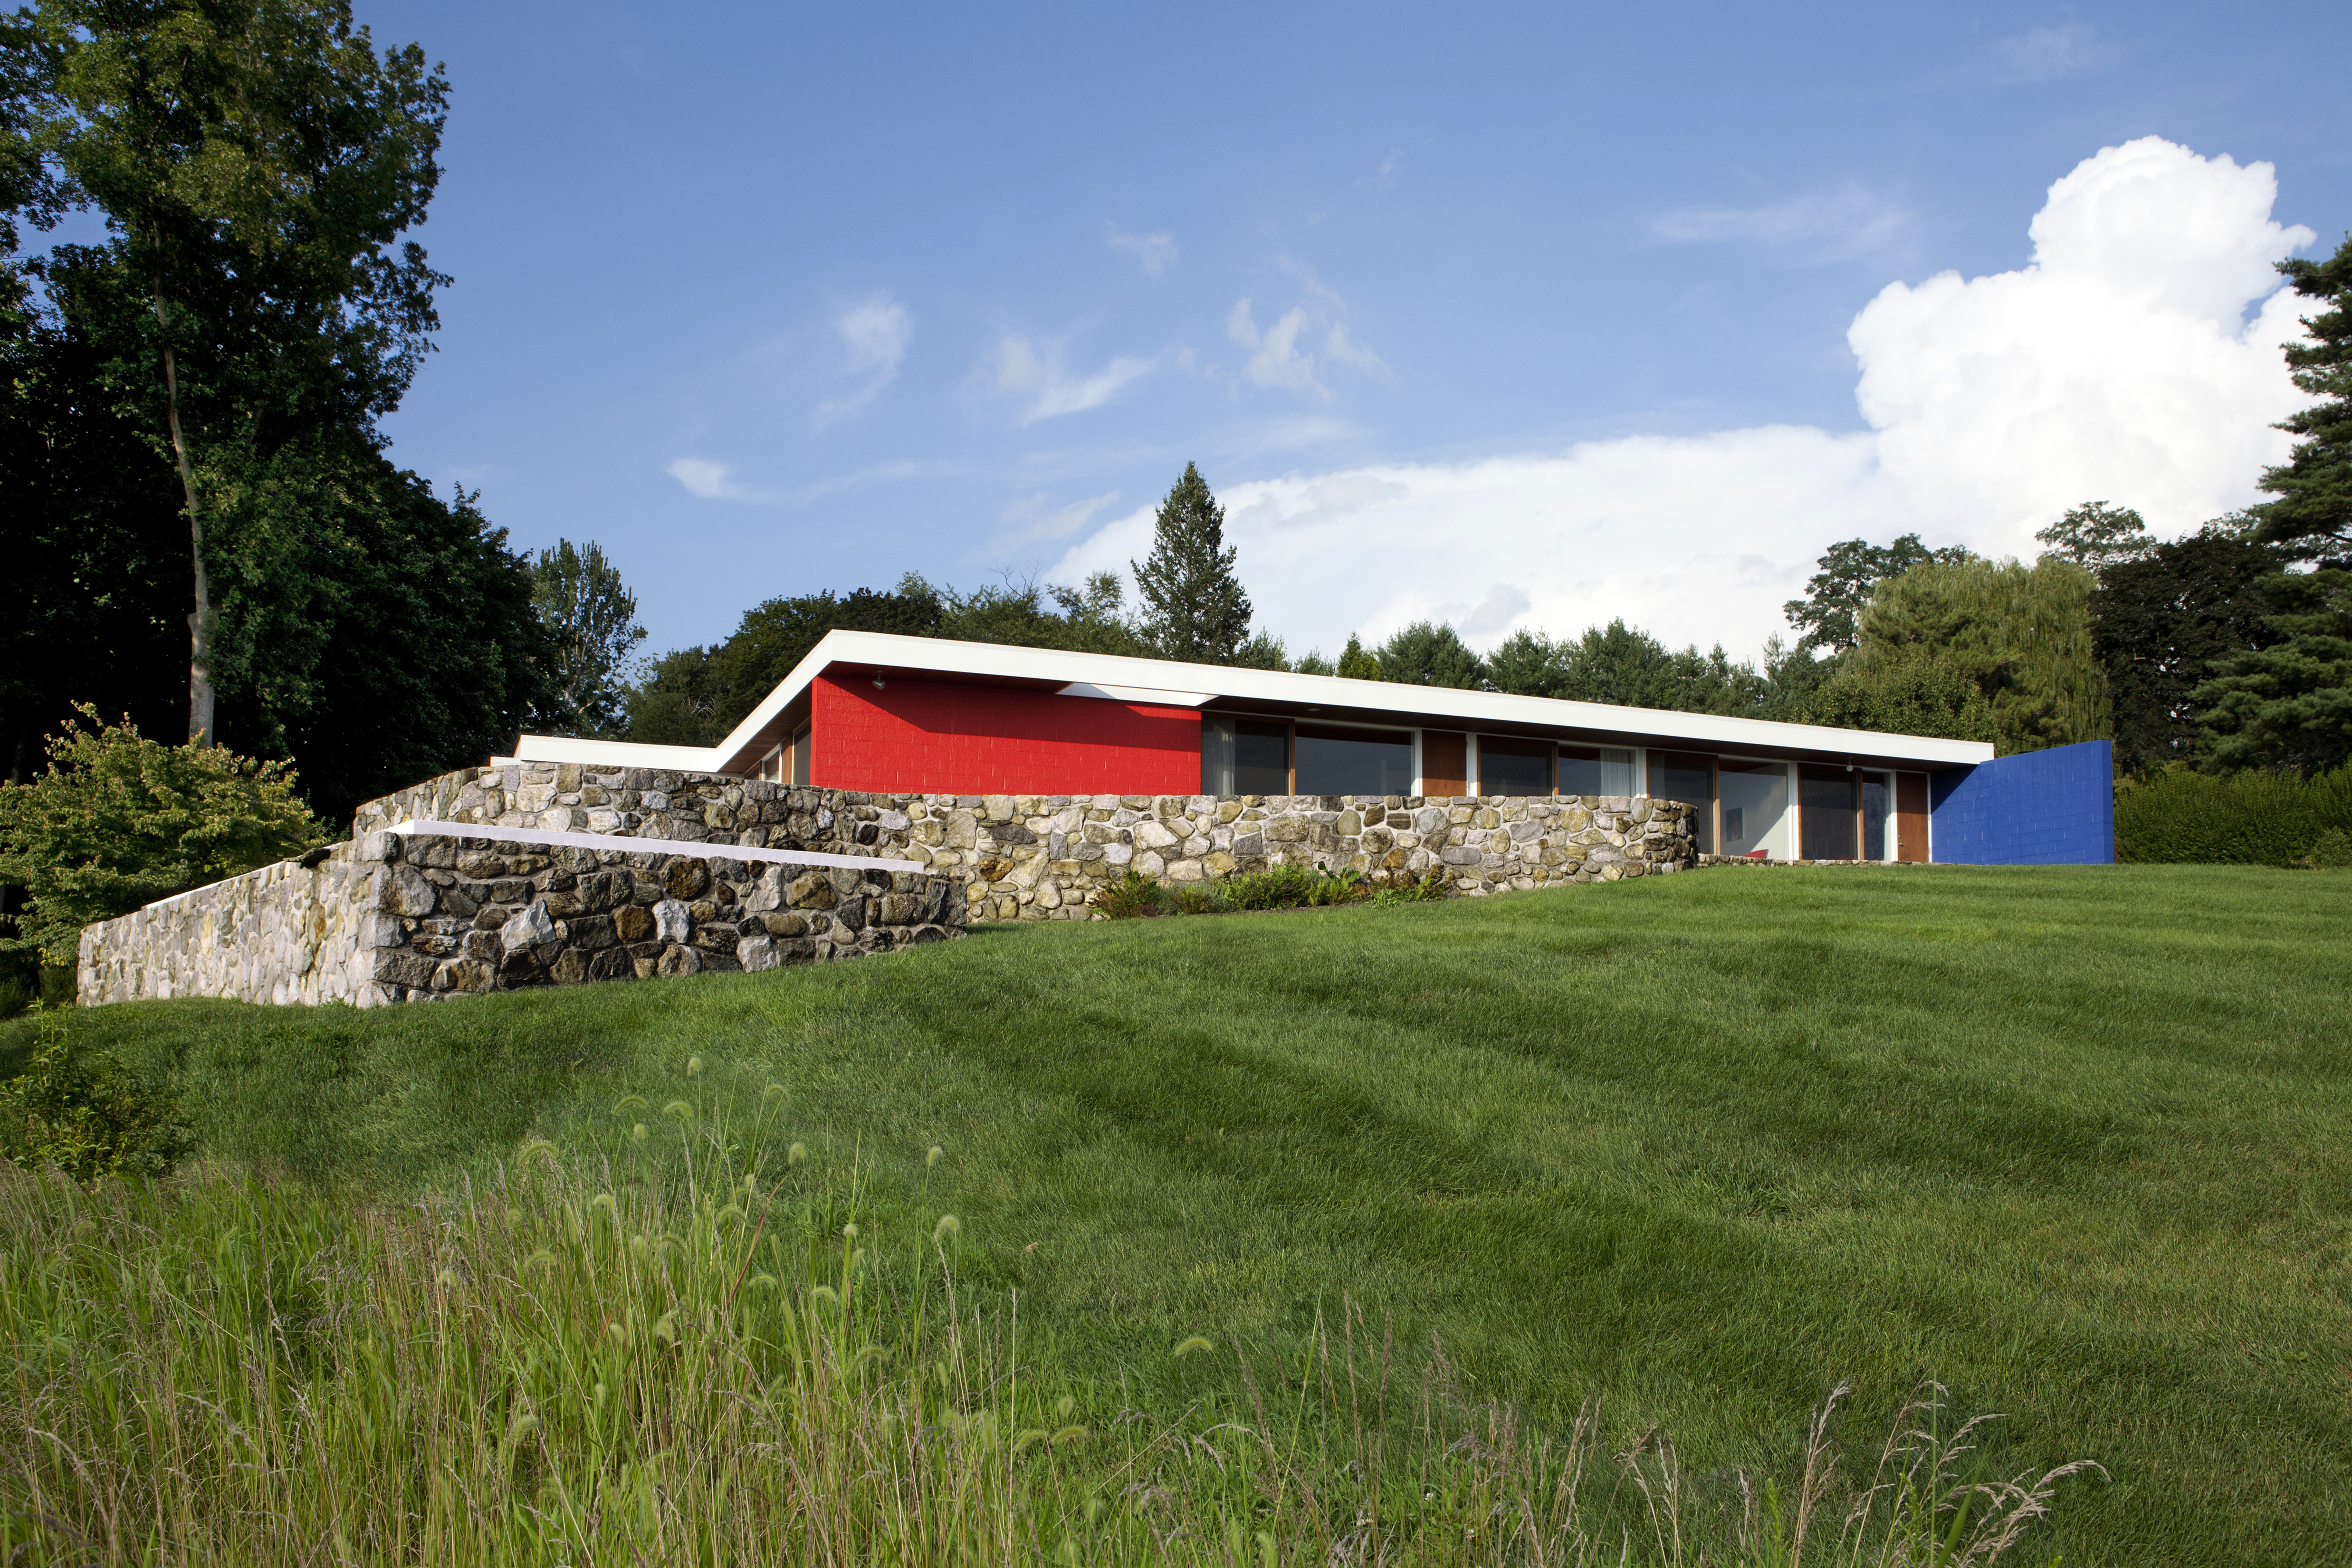 An external view of a stone ranch house designed by Marcel Breuer. There are red and blue walls, white trim, and grass in the front.